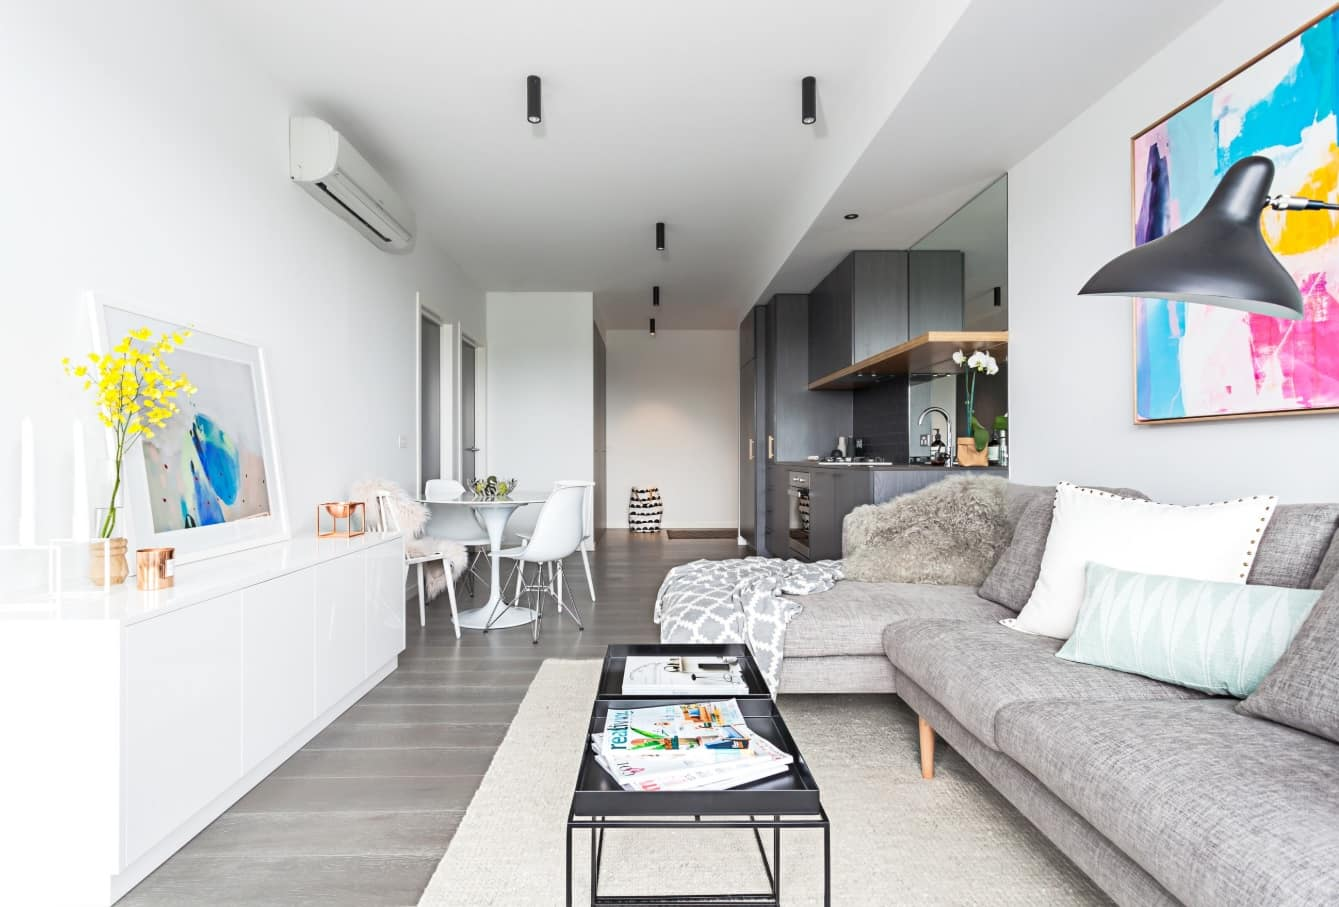 Oblong studio apartment with the lounge zone in the center